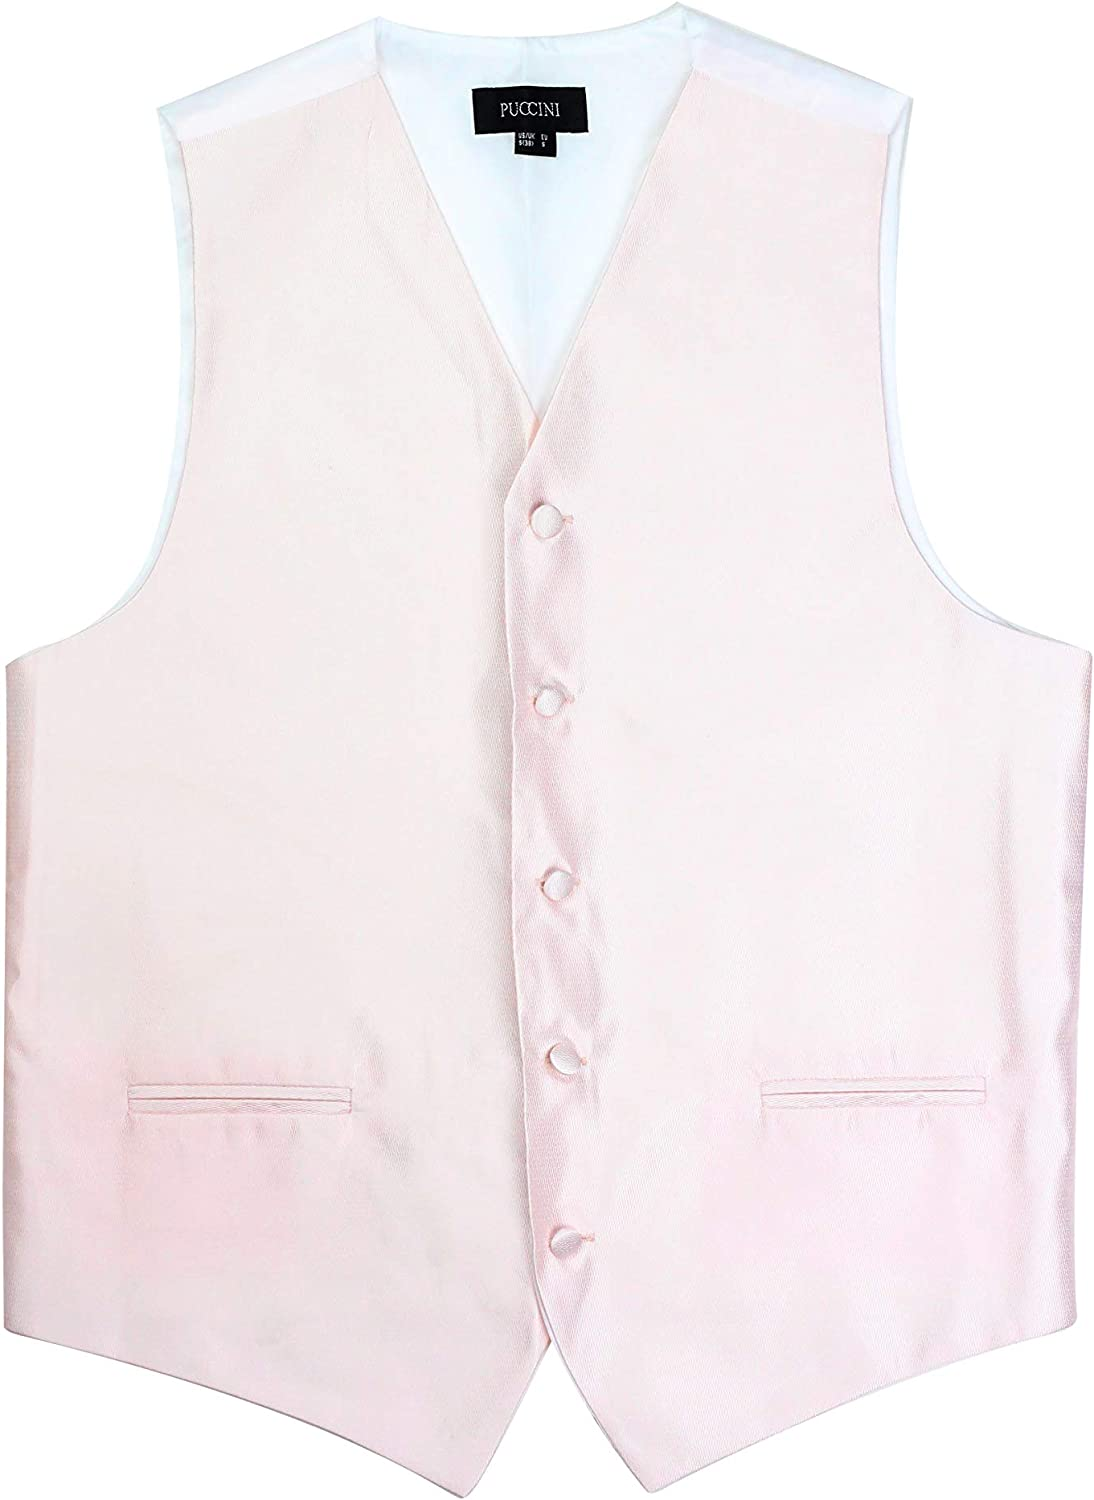 PUCCINI Bows-N-Ties Mens Vest Formal Micro Textured Dress Vest for Suits and Tuxedos